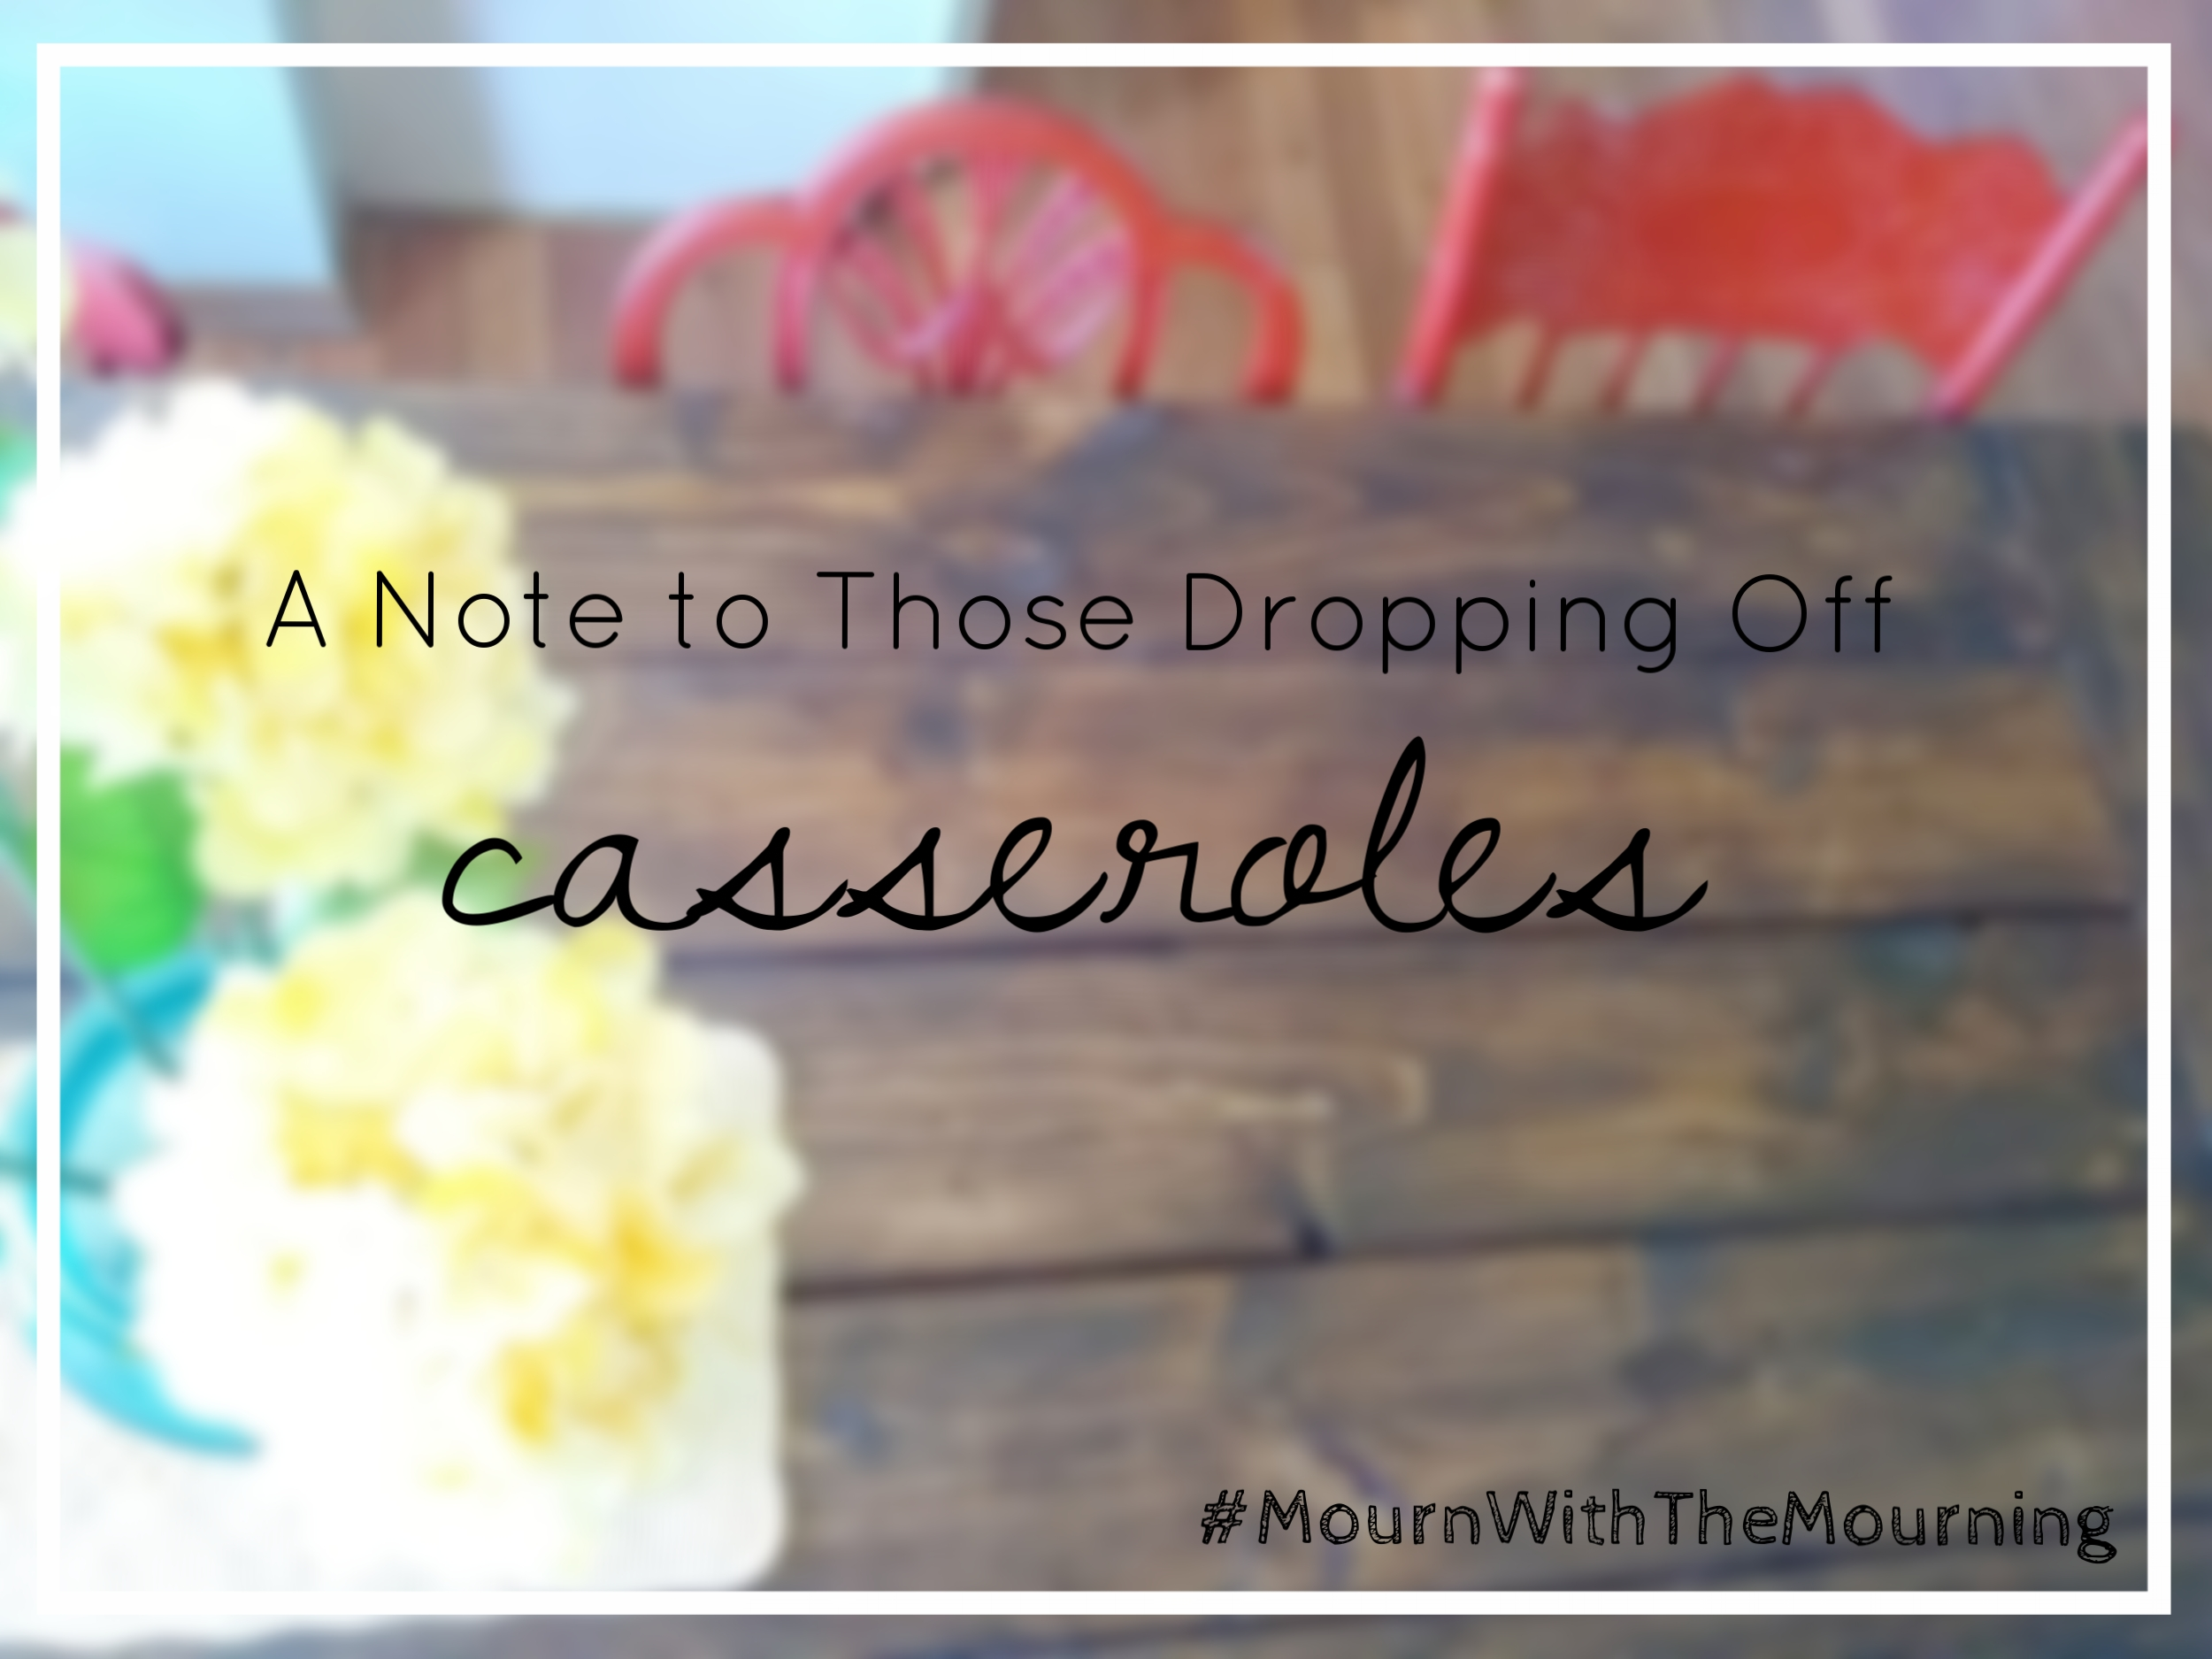 {This week's series is meant to encourage those walking alongside friends grieving the loss of a loved one. Two and a half years ago   our baby was stillborn ,  and we were deeply touched by those who did the hard work of showing up.  Follow along on   social media   throughout the rest of the week for more encouragement and advice. #MournWithTheMourning}